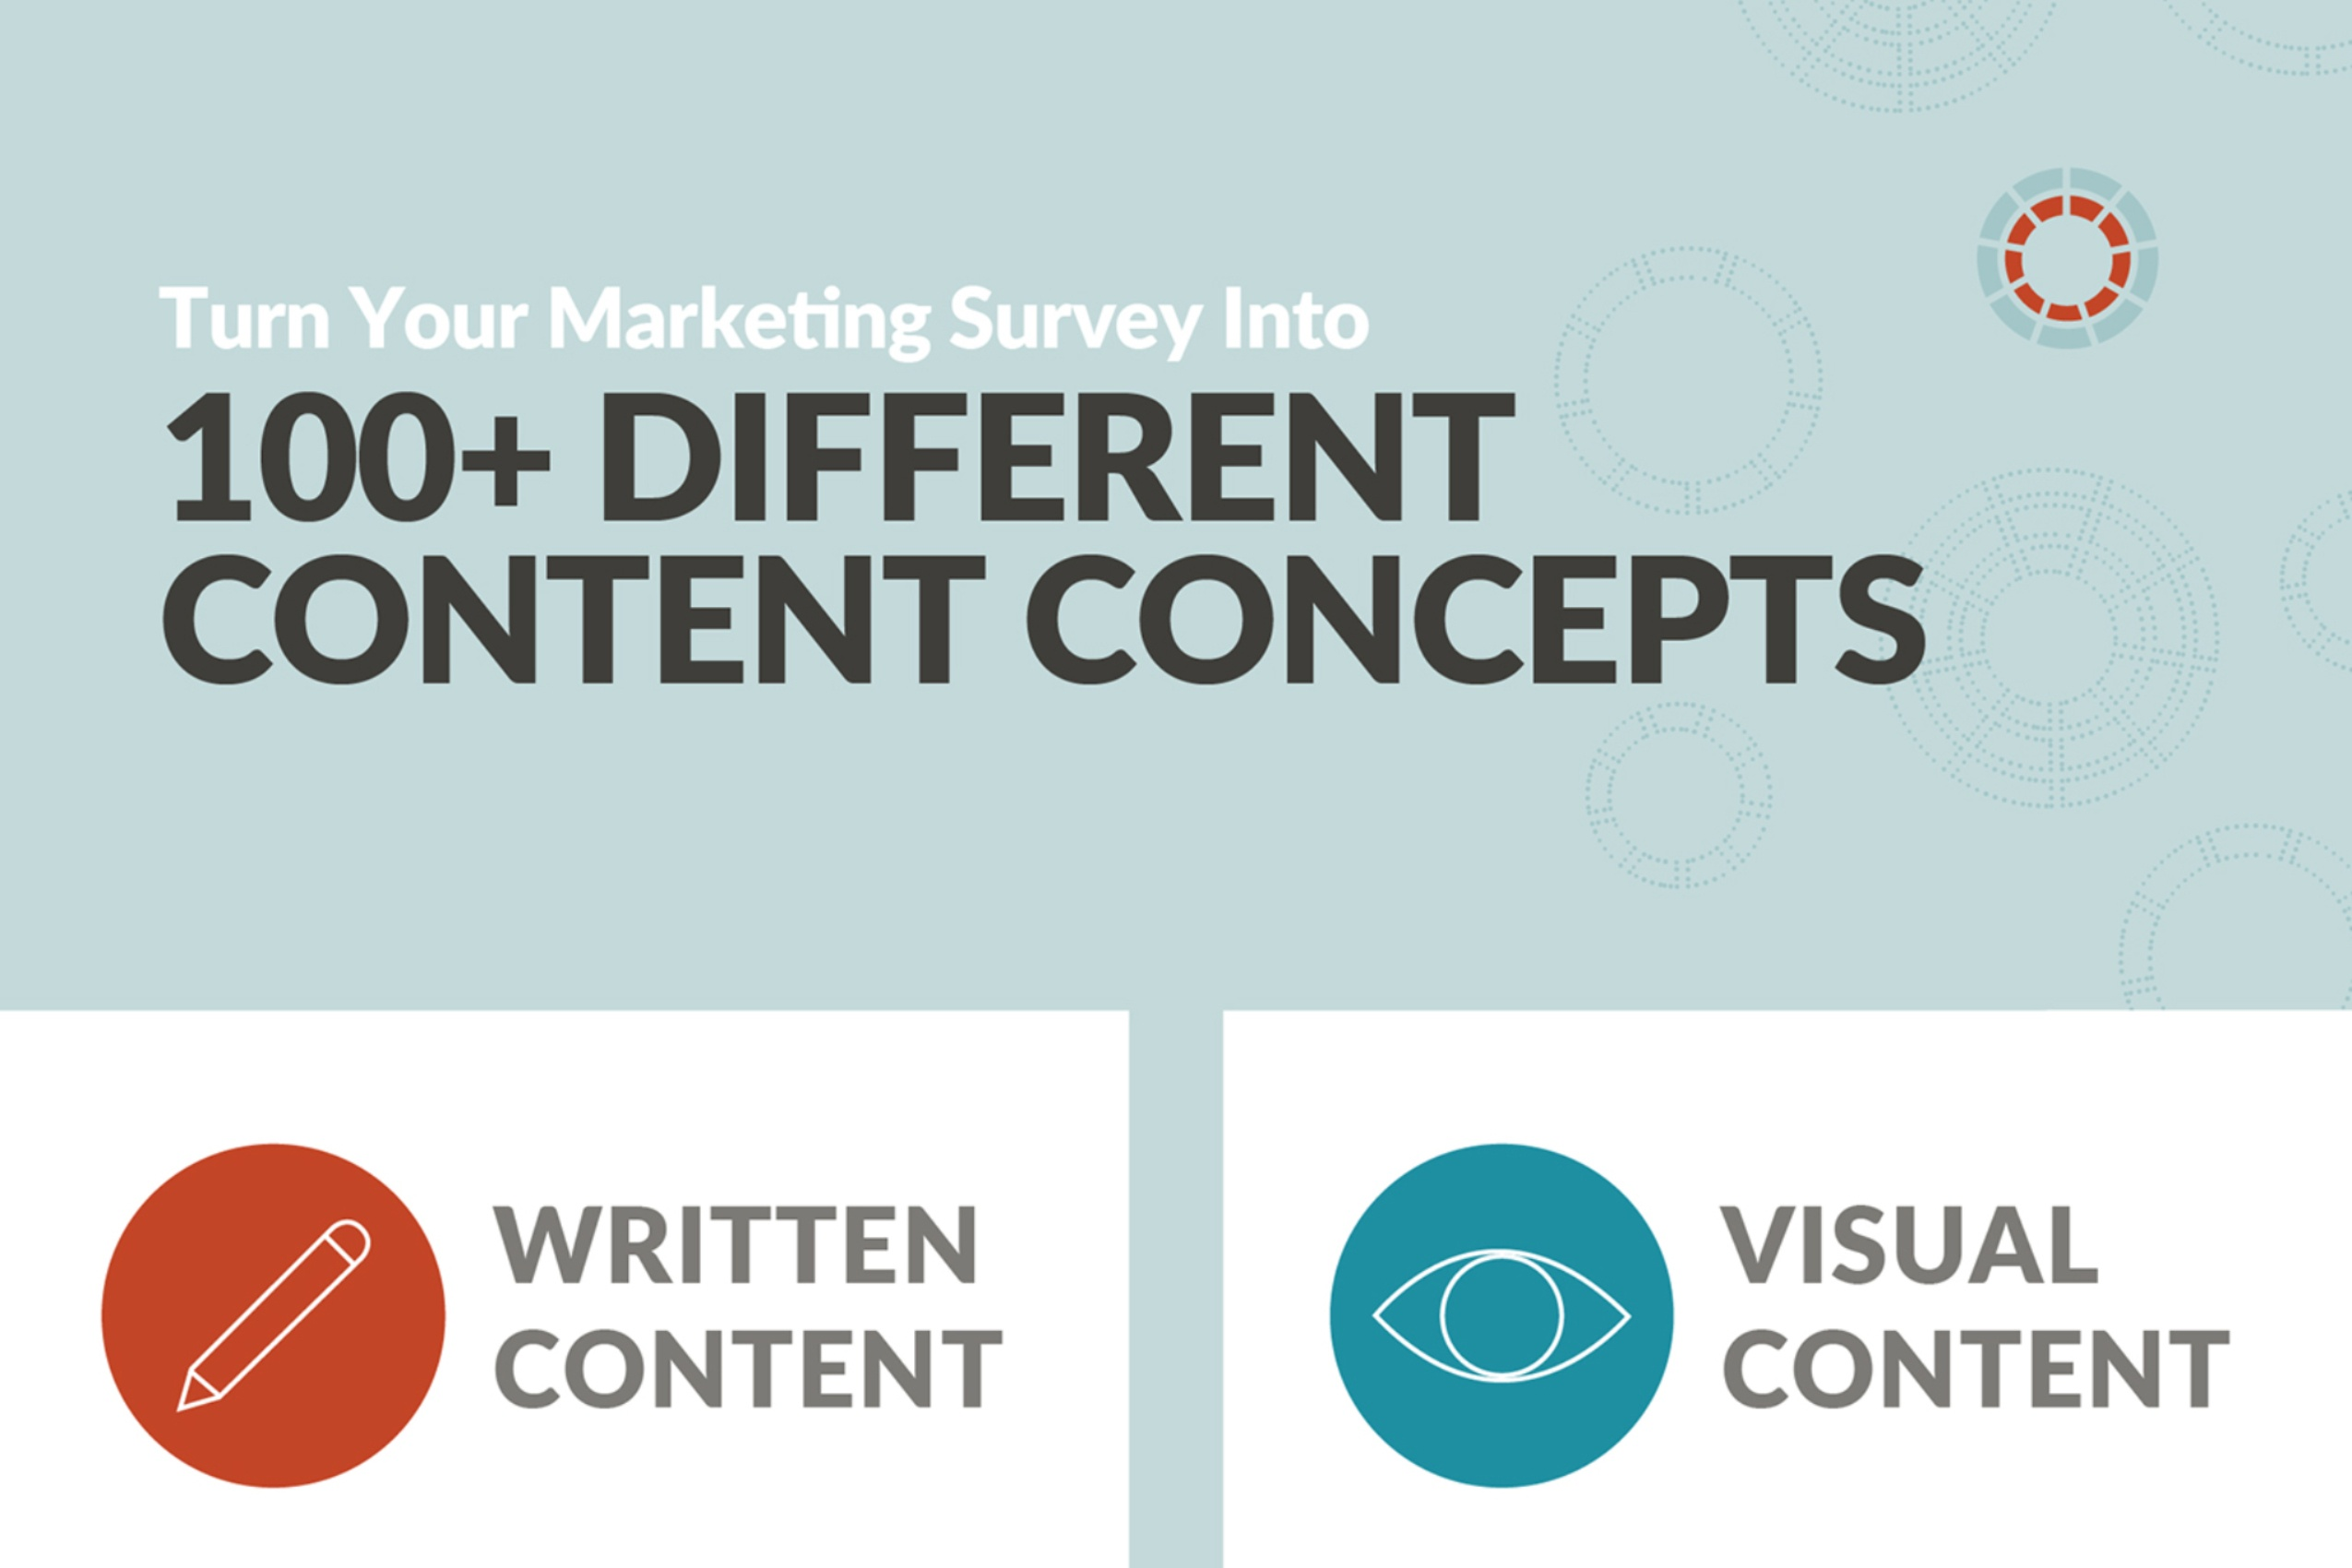 Turn Your Marketing Survey Into 100+ Content Concepts (infographic)